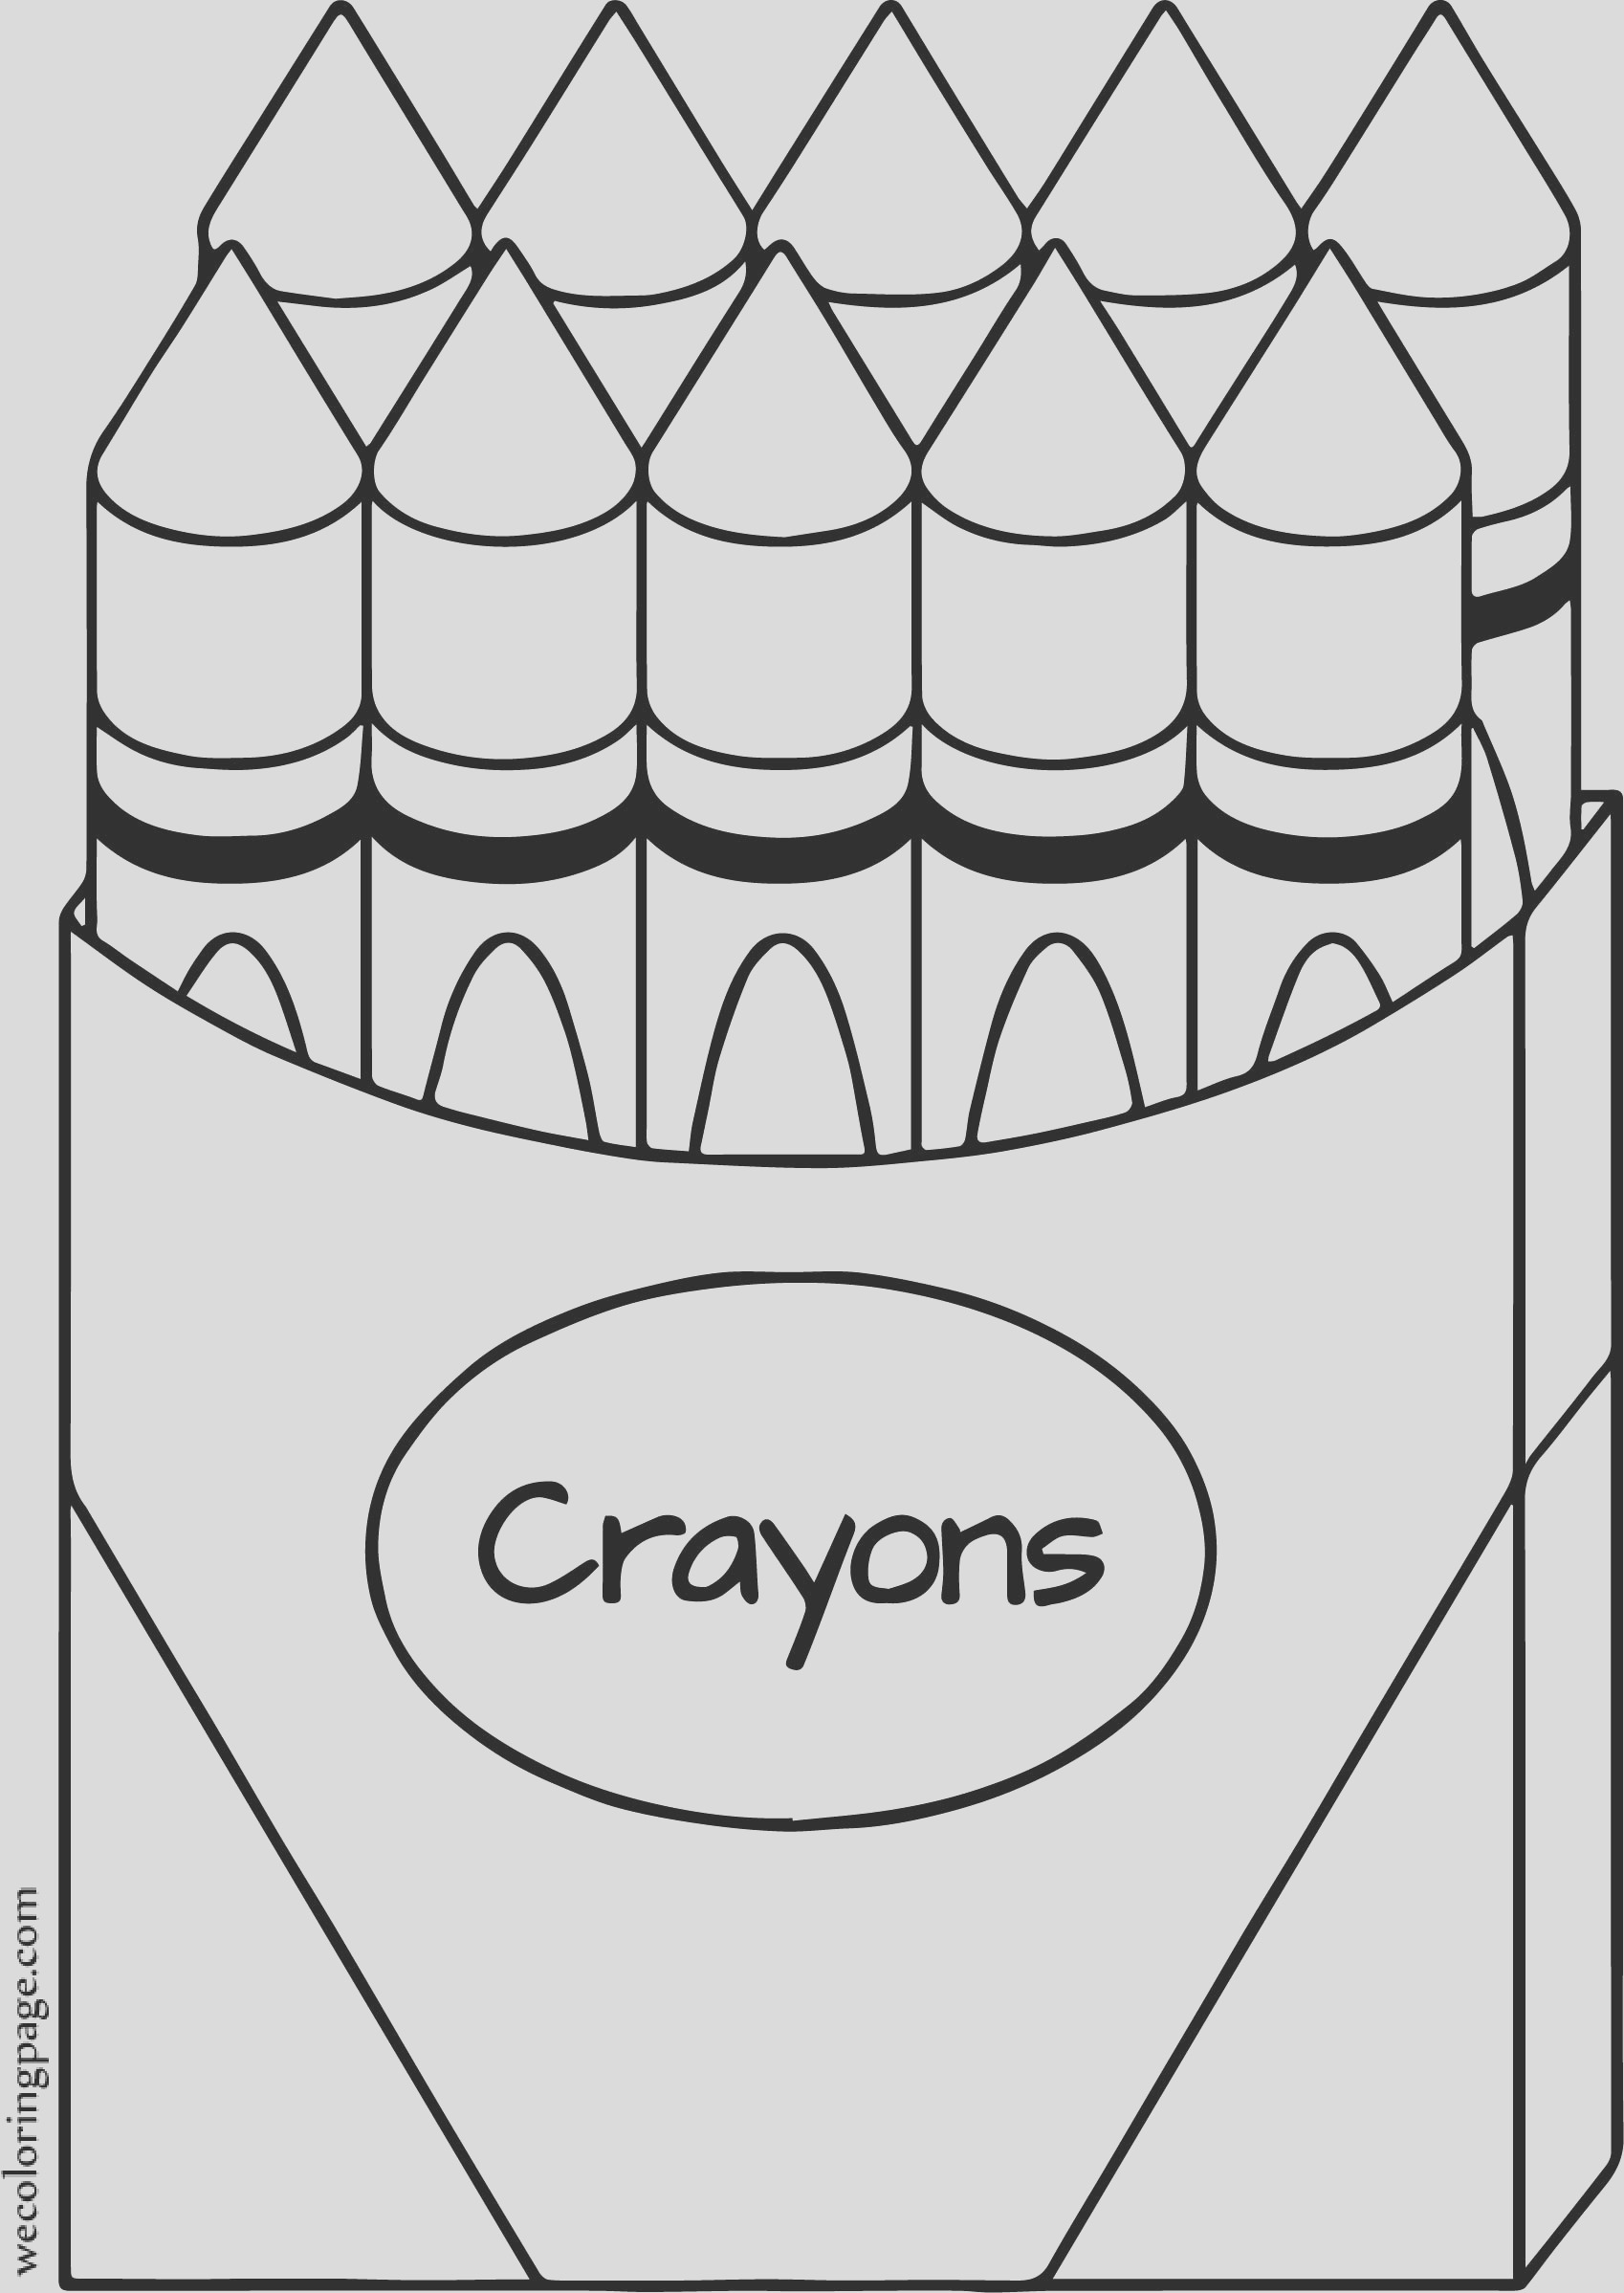 crayon all coloring page